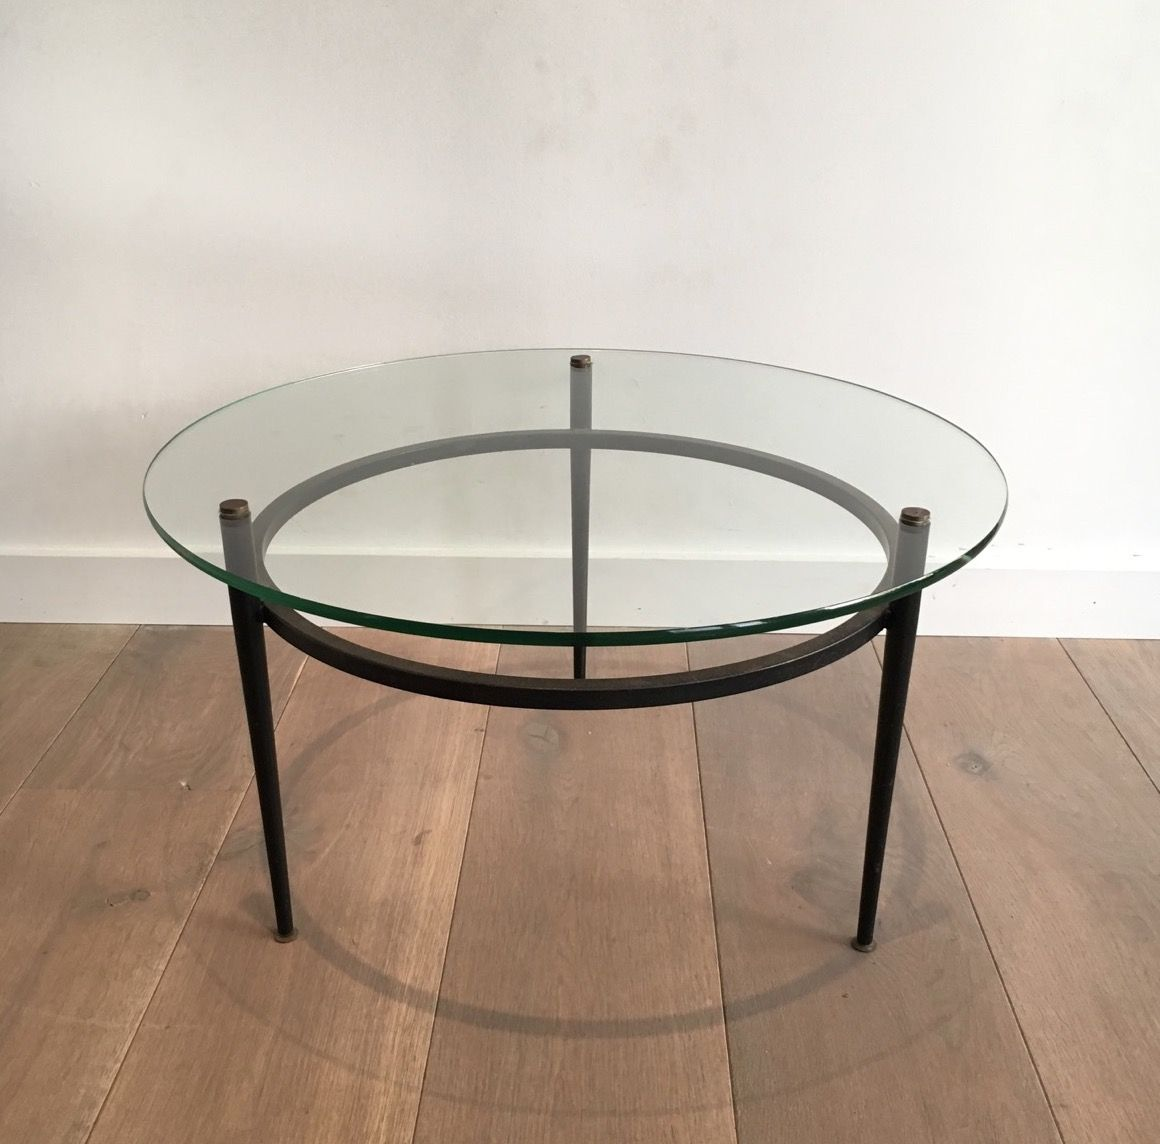 Vintage Small Round Glass Coffee Table 10 1 059 00 Price Per Piece